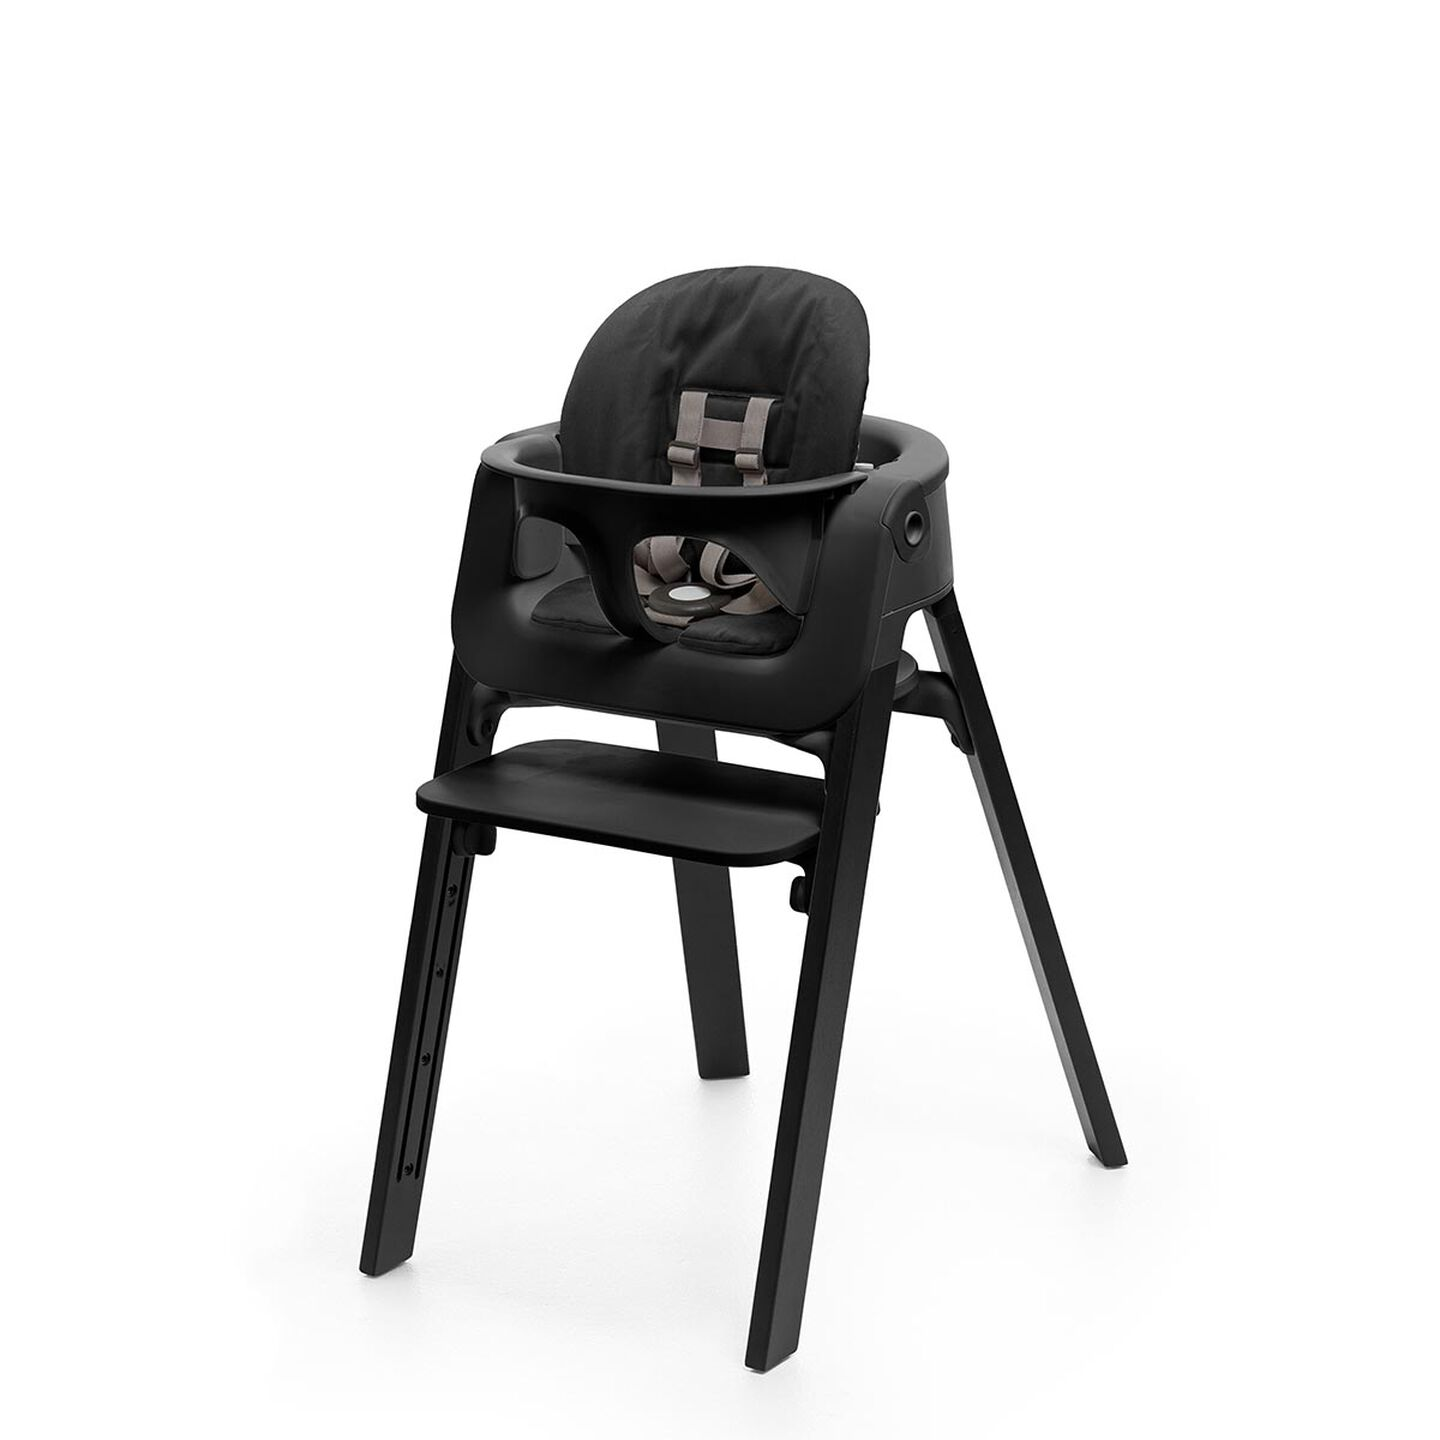 Oak Black Chair, Black Baby Set view 2